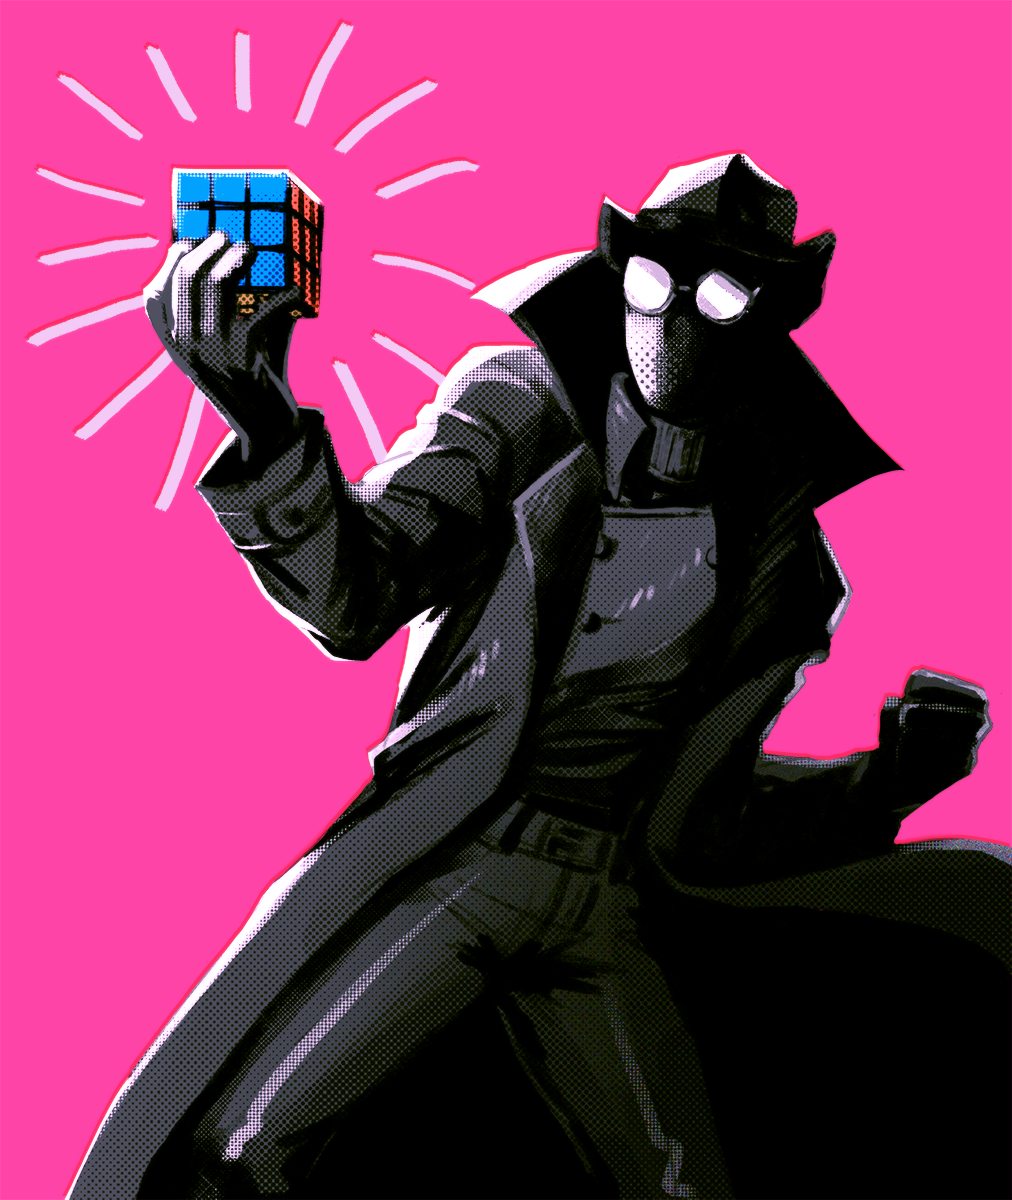 Spiderman noir and his rubik 39 s cube comics characters spiderman spider spiderman marvel - Image spiderman noir ...